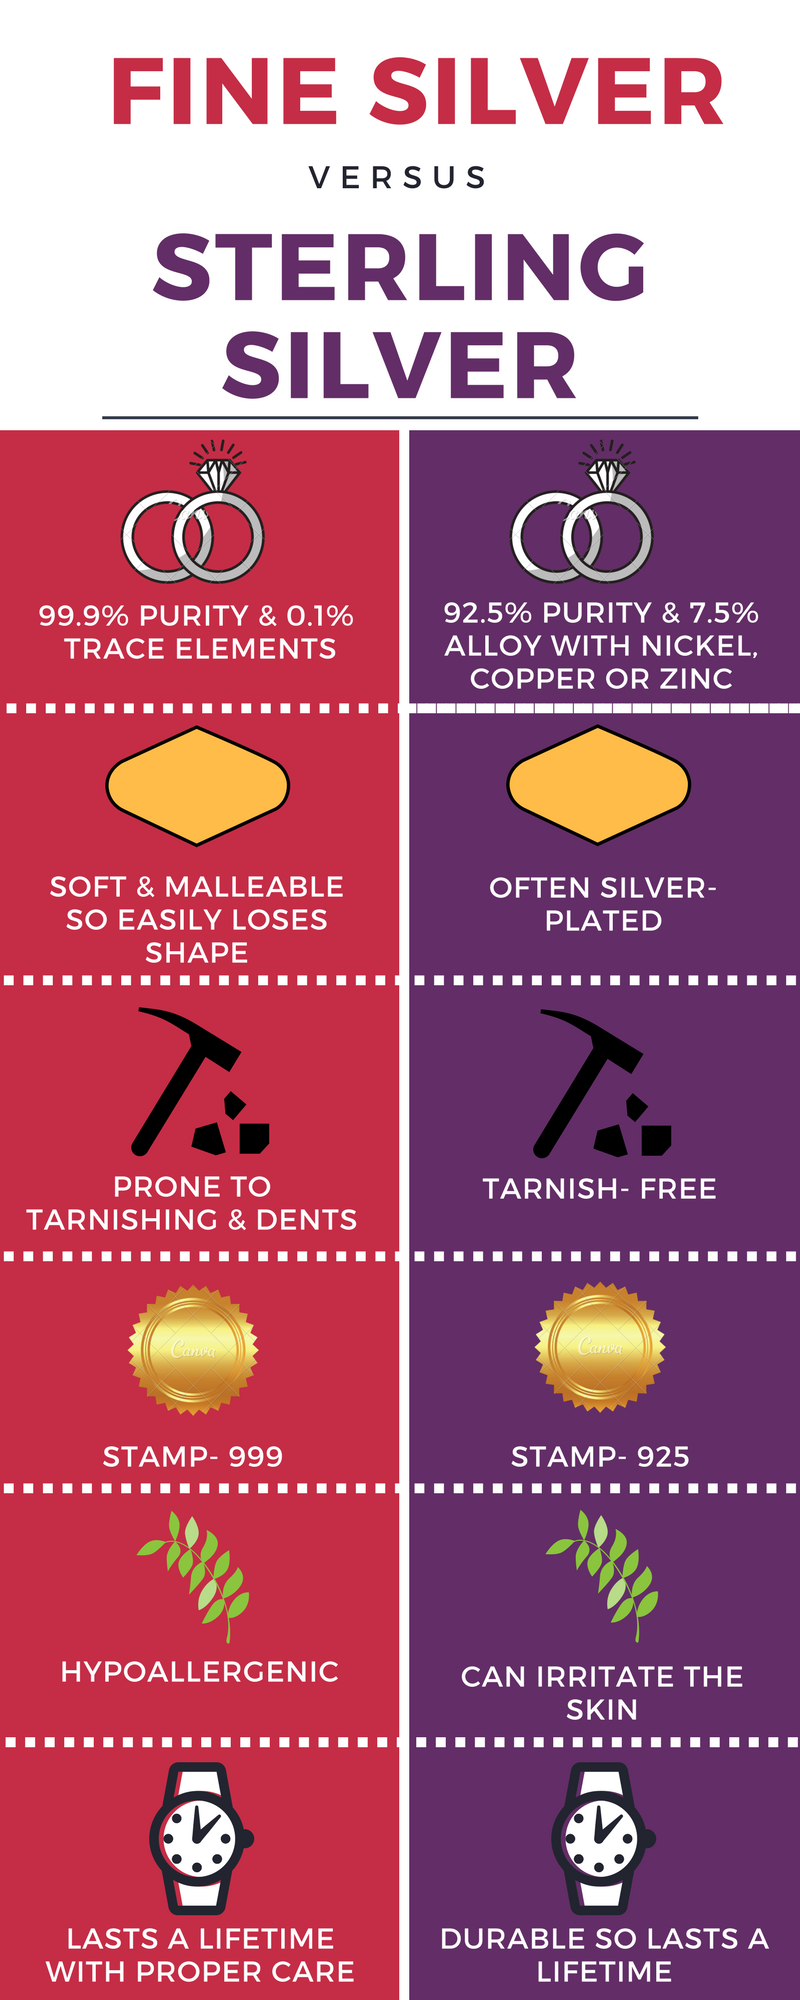 infographic-differences-between-silver-and-sterling-silver